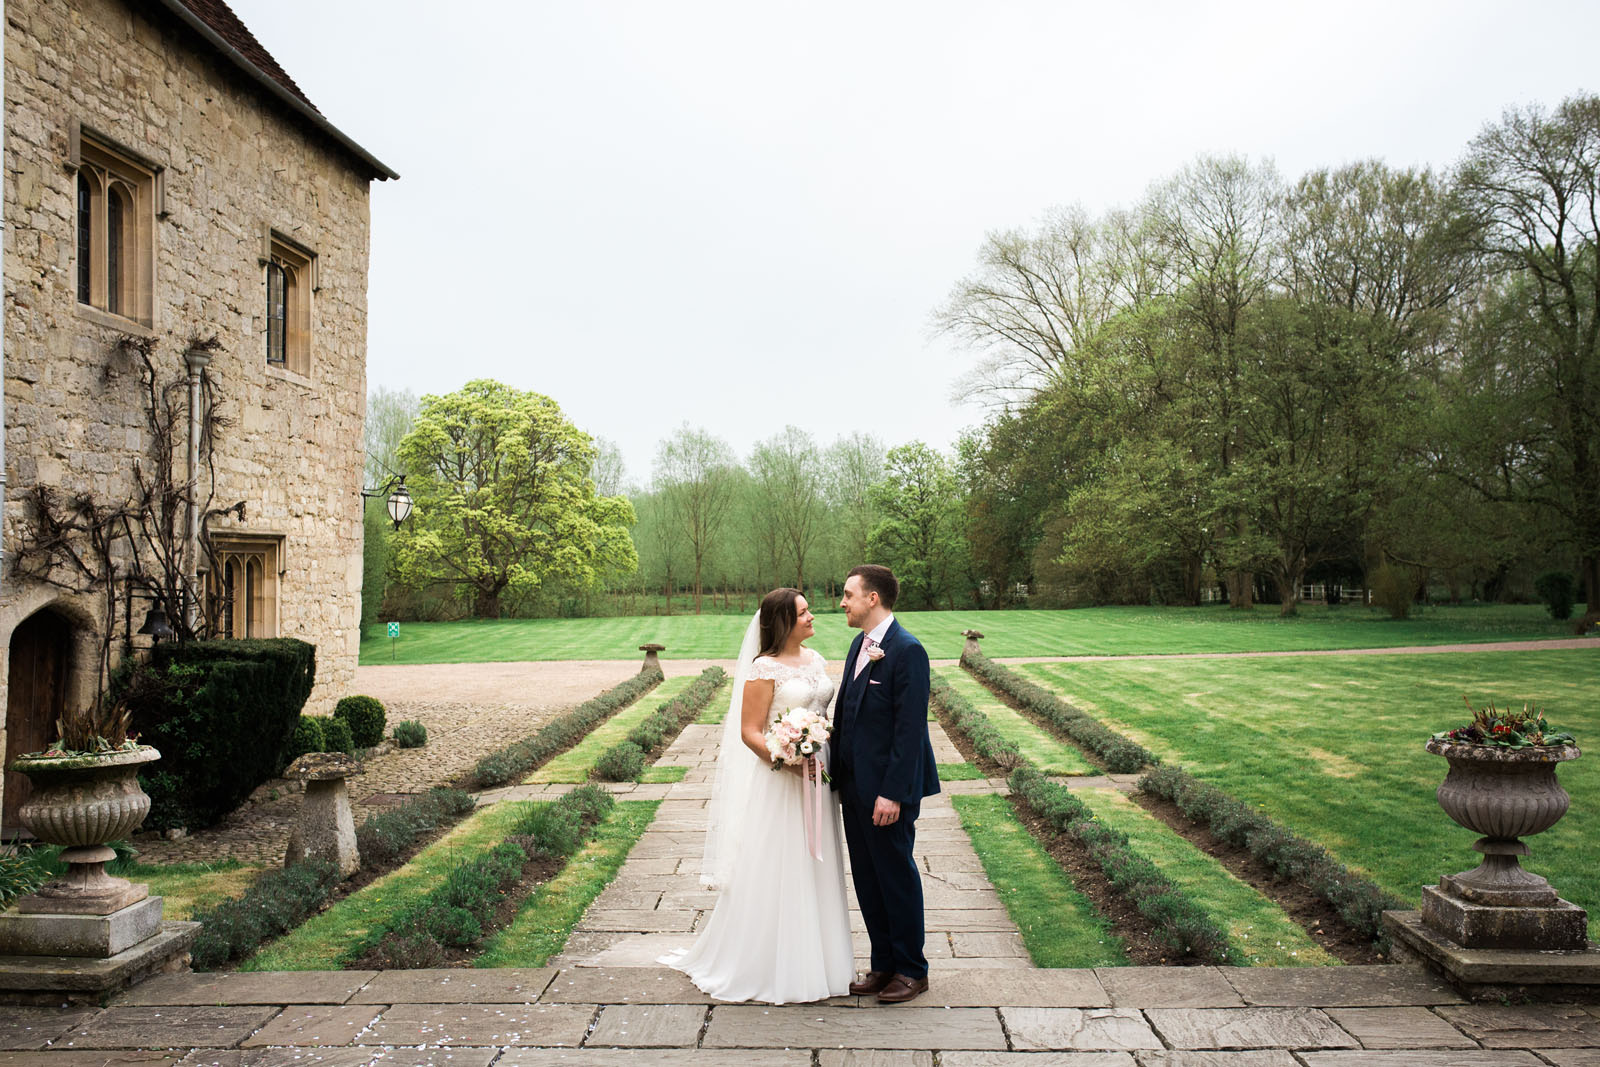 Notley Abbey Weddings Buckinghamshire